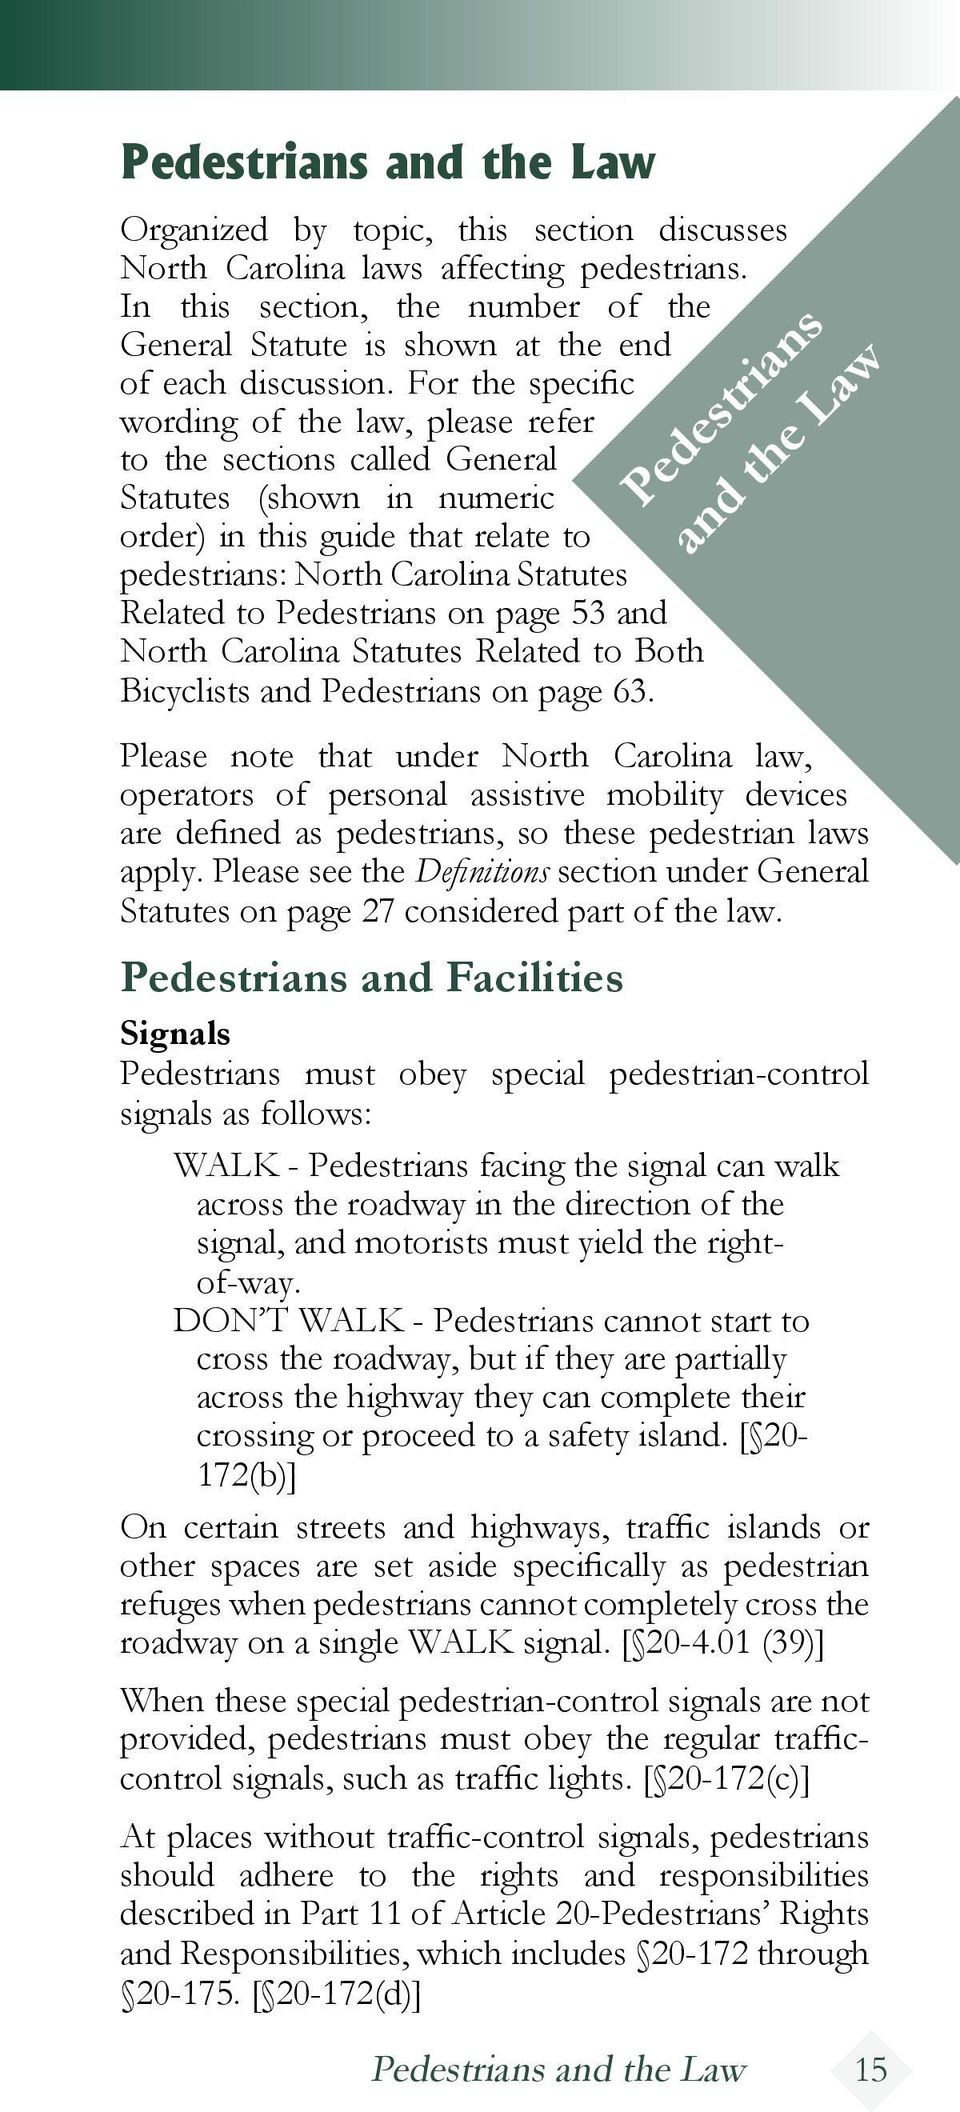 Pedestrians on page 53 and North Carolina Statutes Related to Both Bicyclists and Pedestrians on page 63.